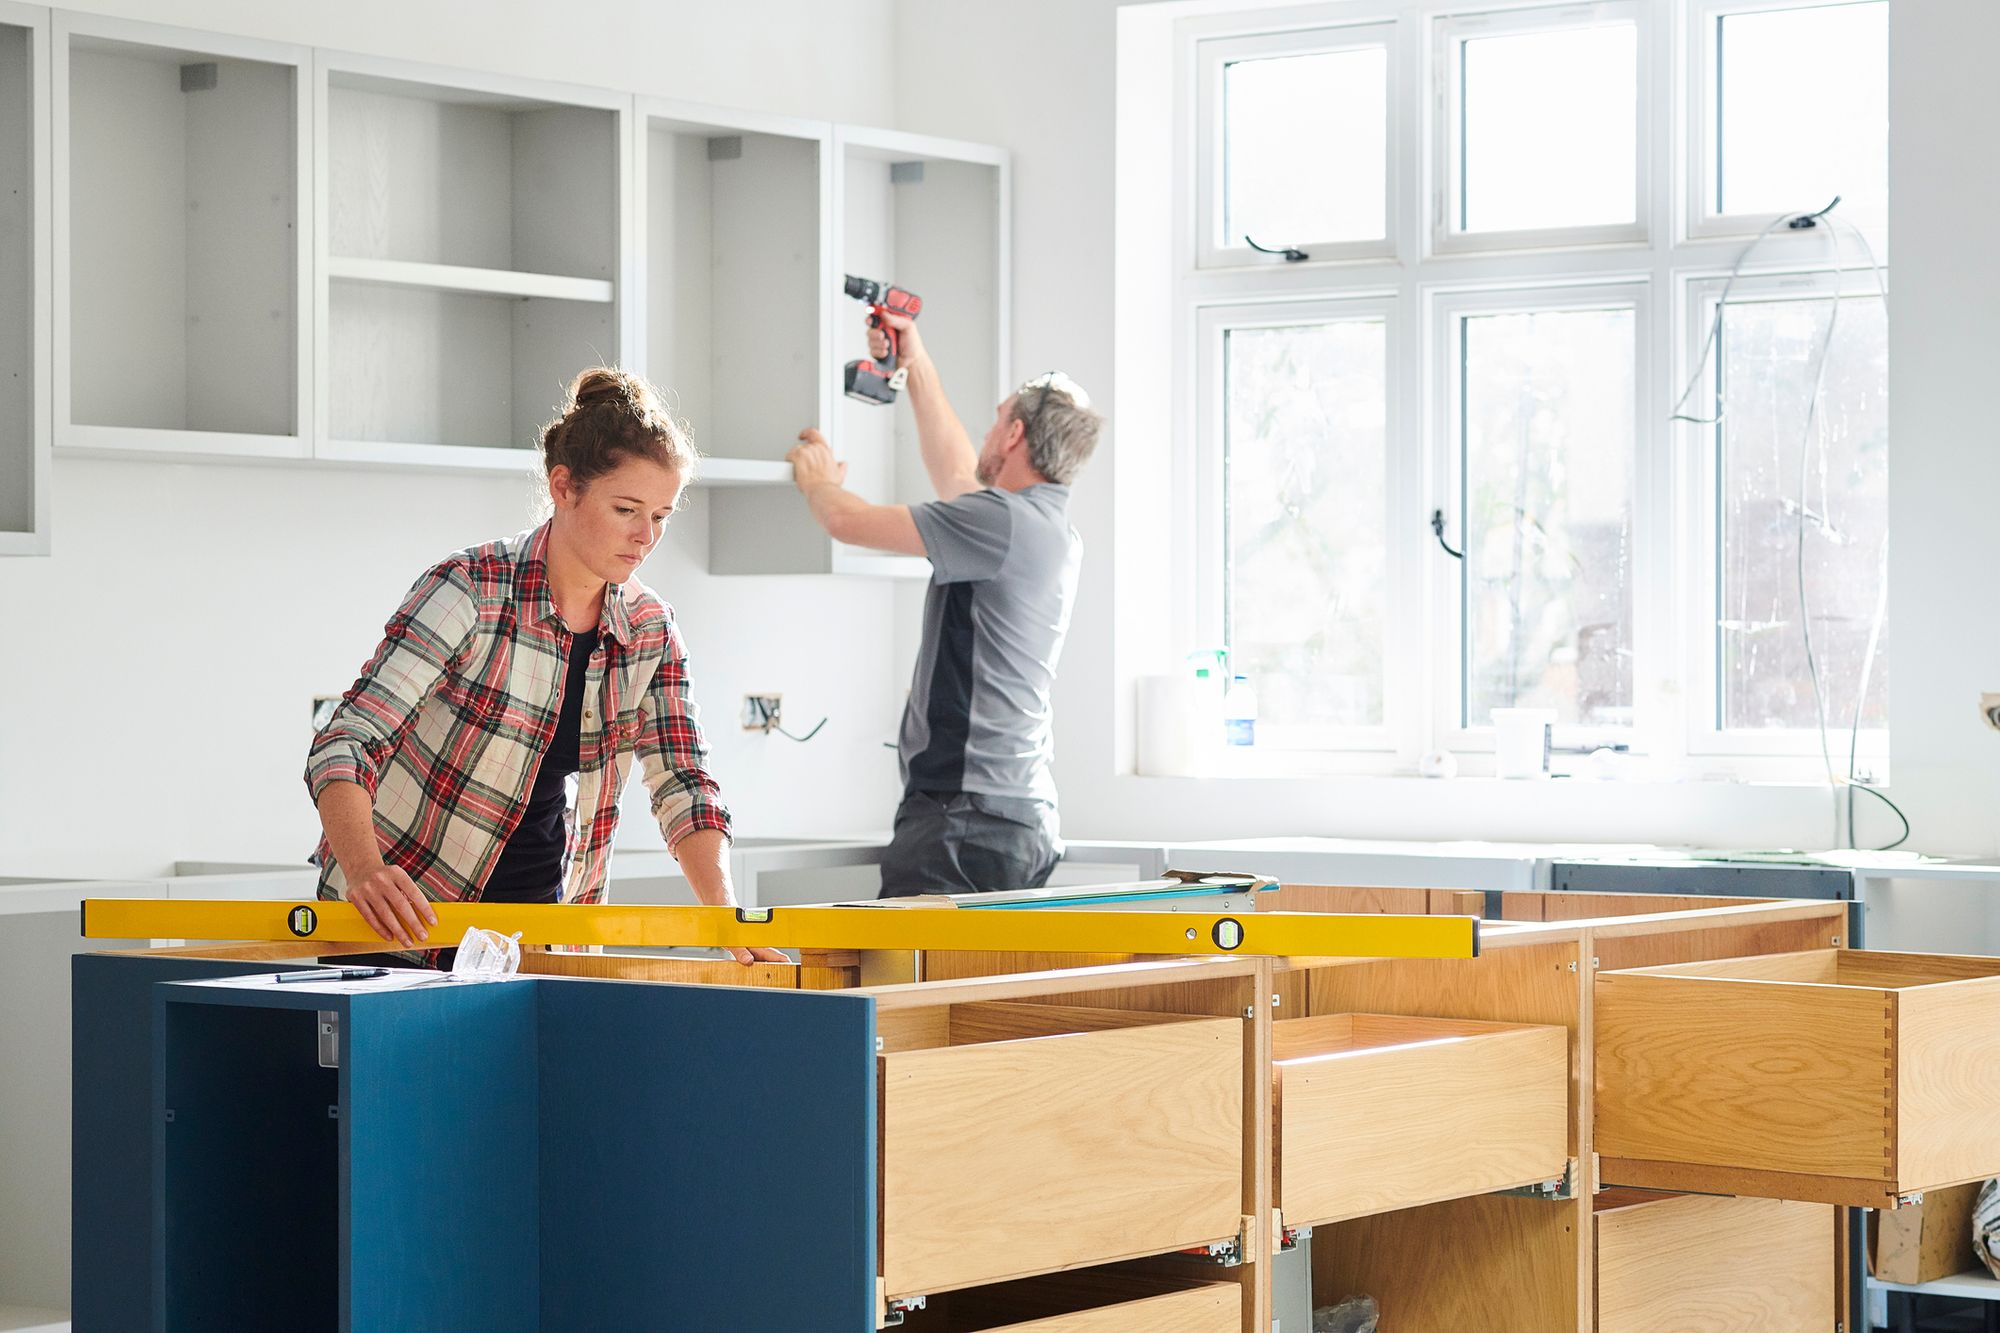 7 Home Renovations That Can Hurt Your Home's Value